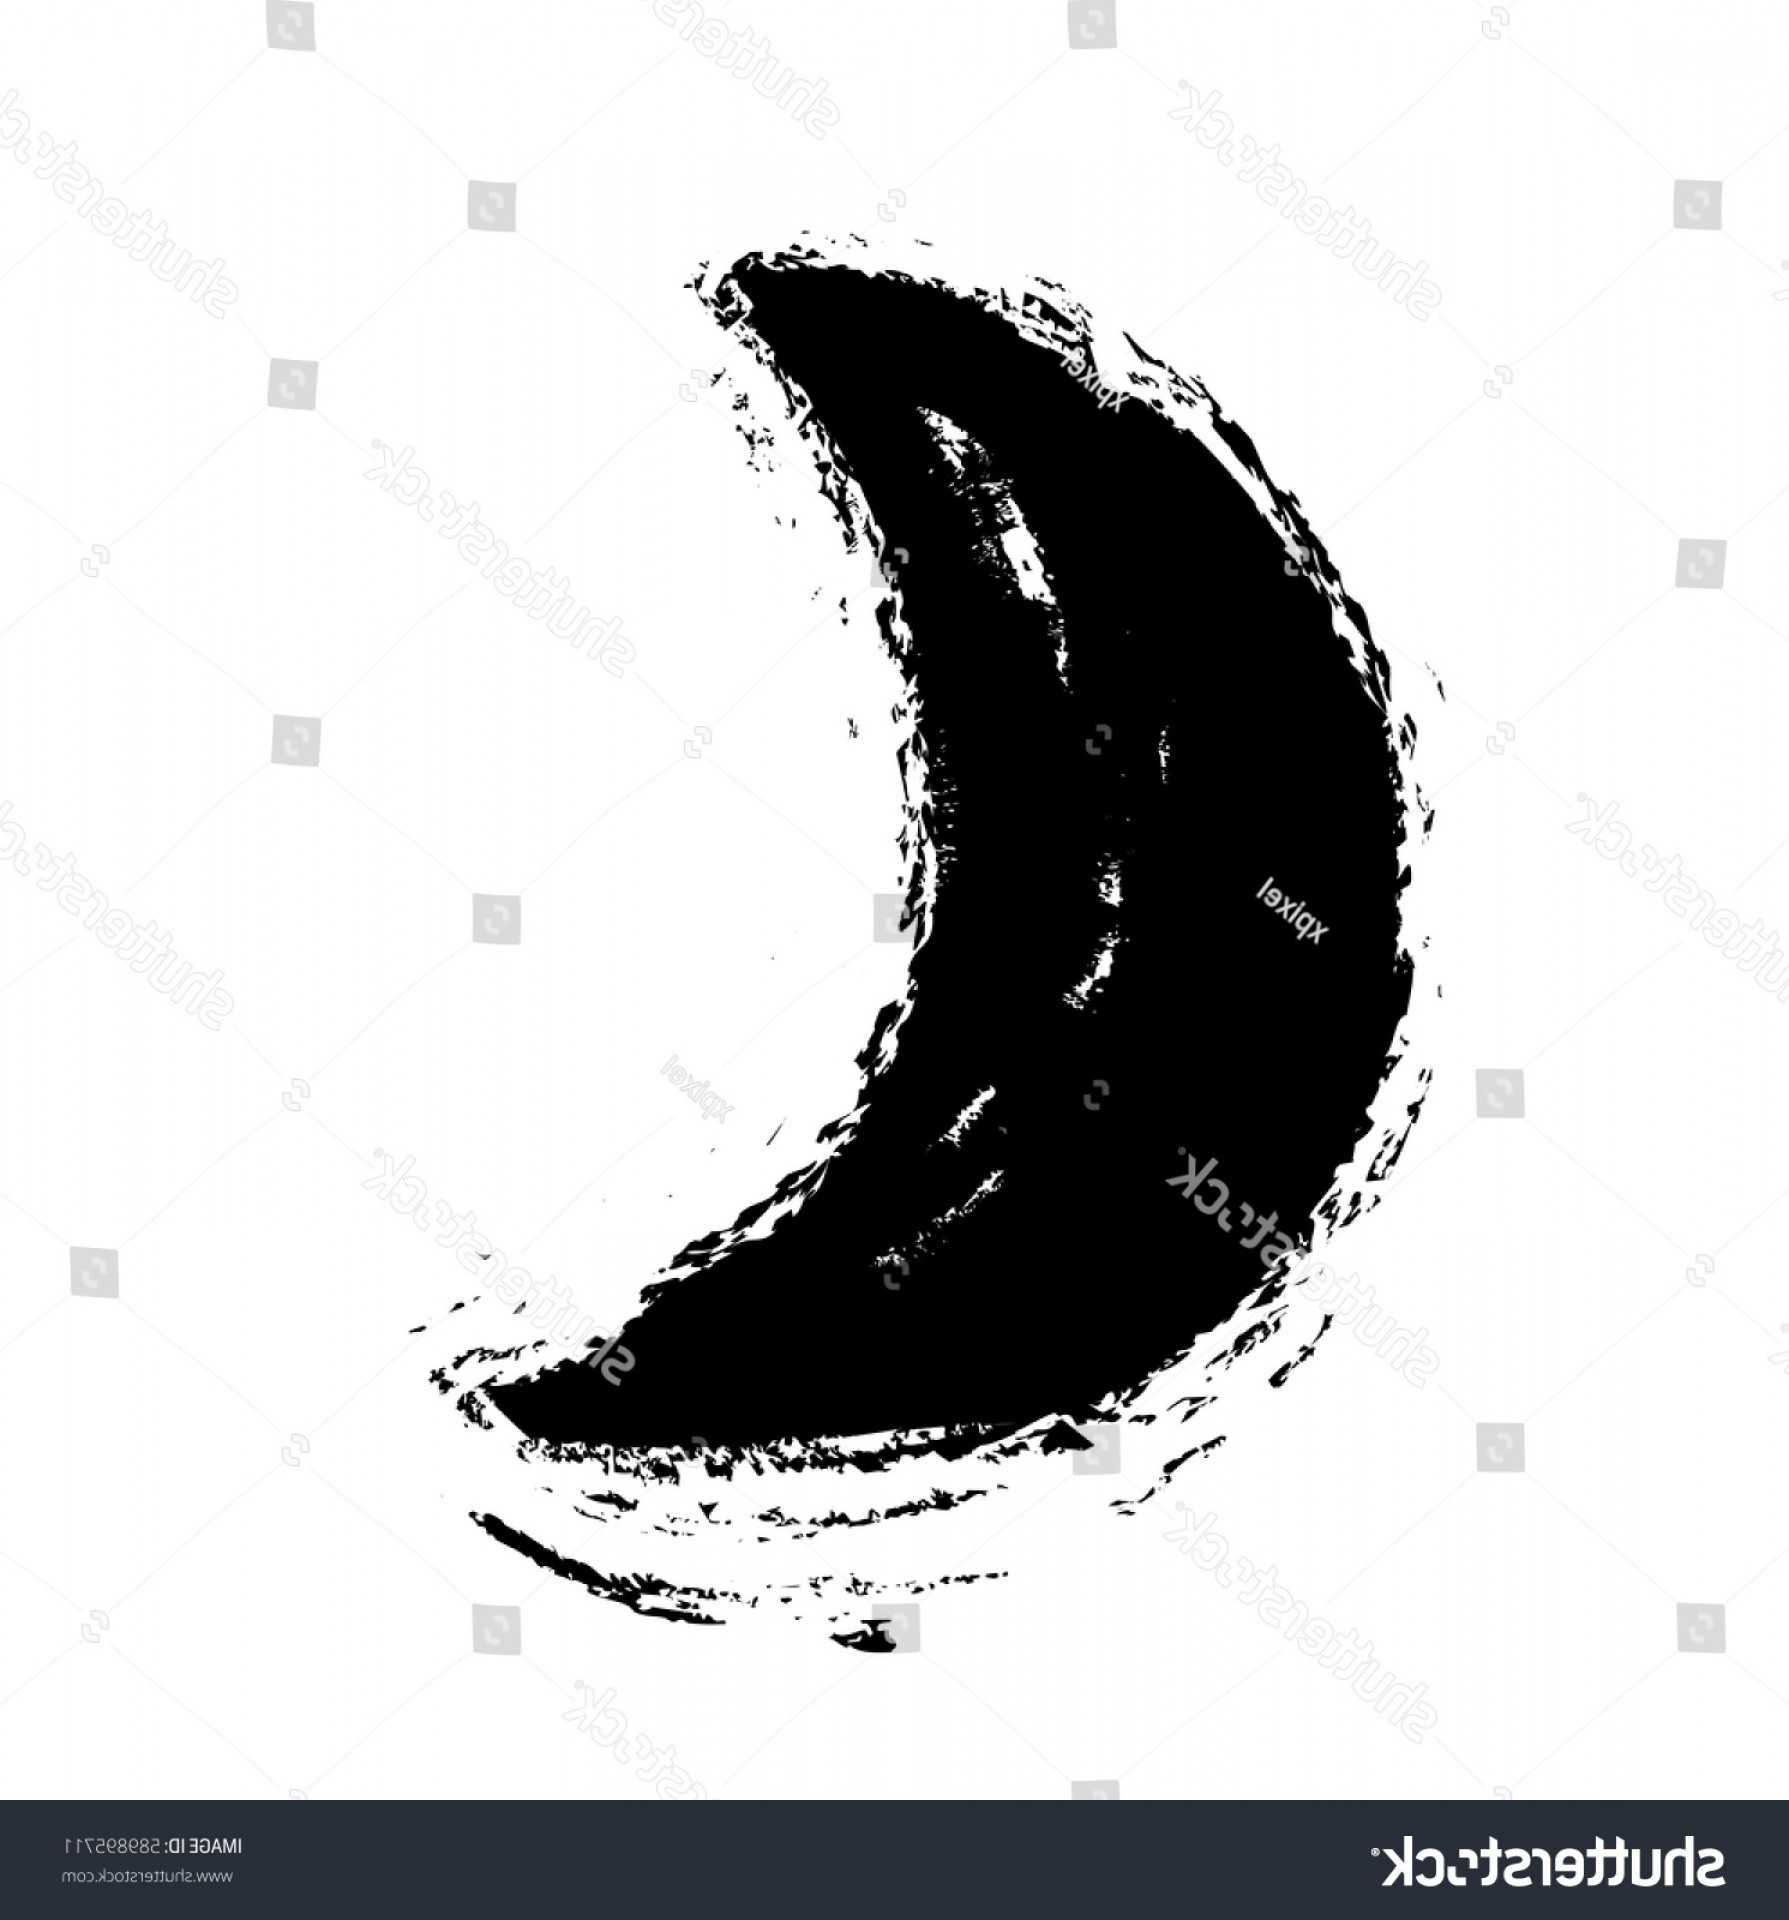 Cresent Moon Vector: Grunge Crescent Moon Vector Icon